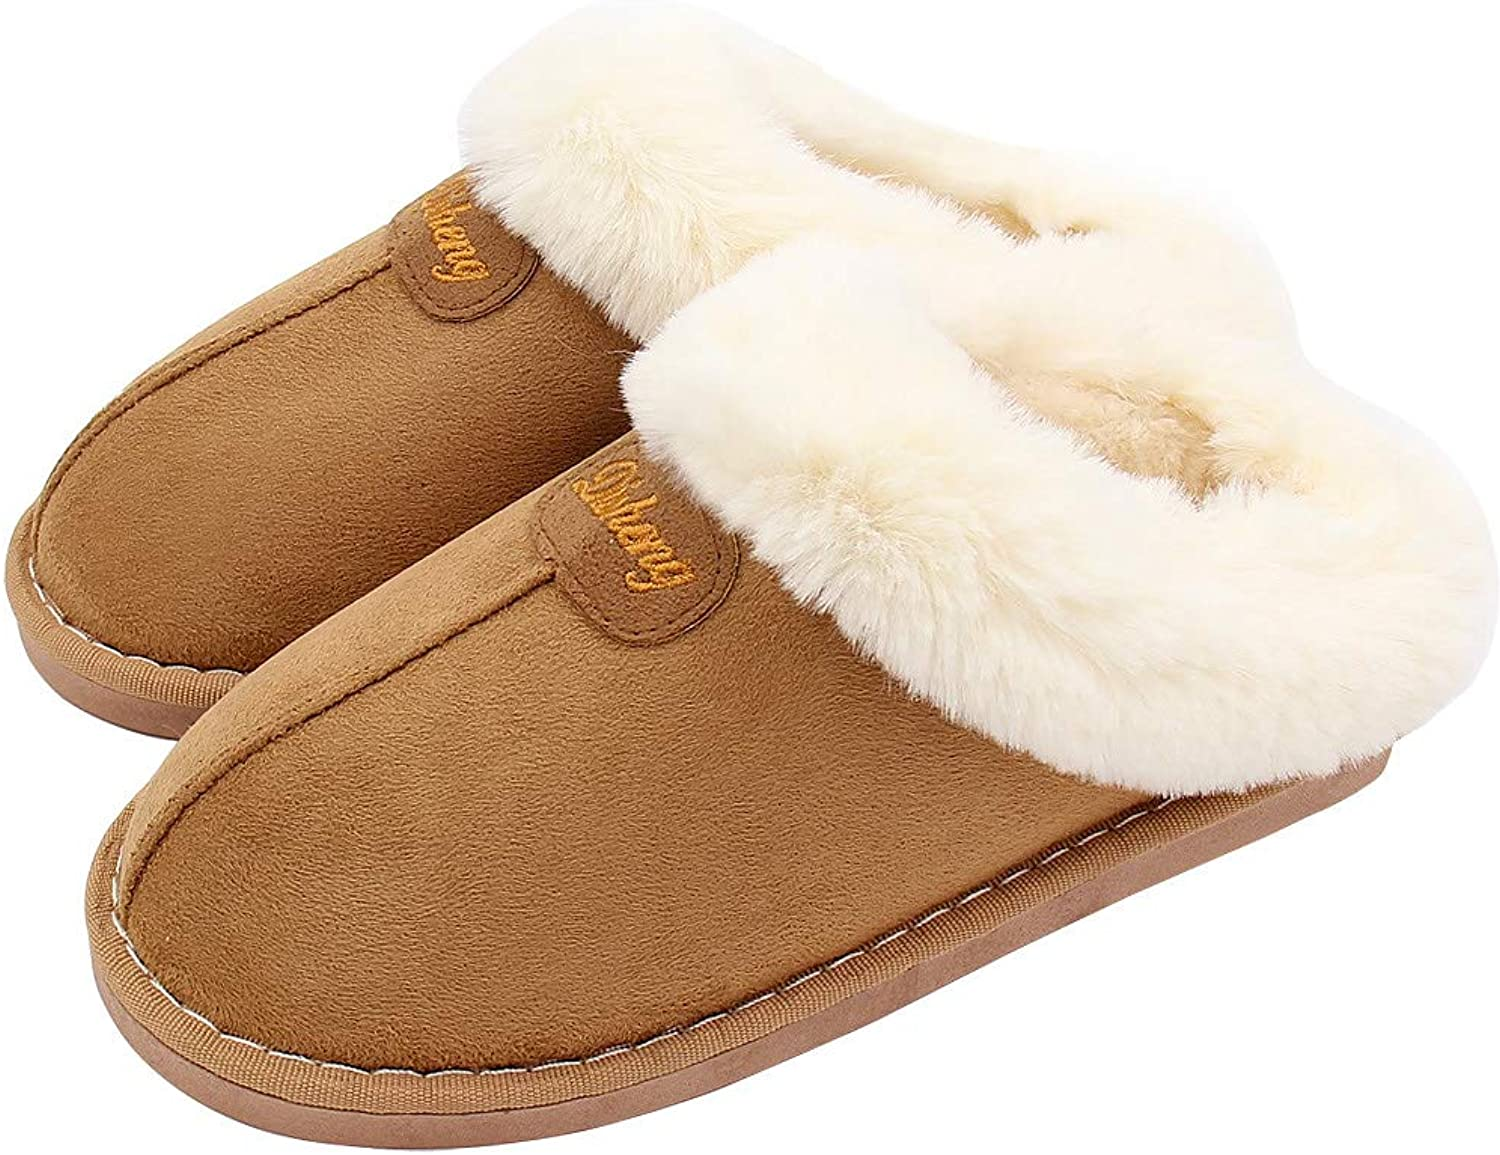 ALOTUS Unisex Thick Fur Warm Soft Slippers with Memory Foam Words Decoration Inside Outdoor Indoor Pink